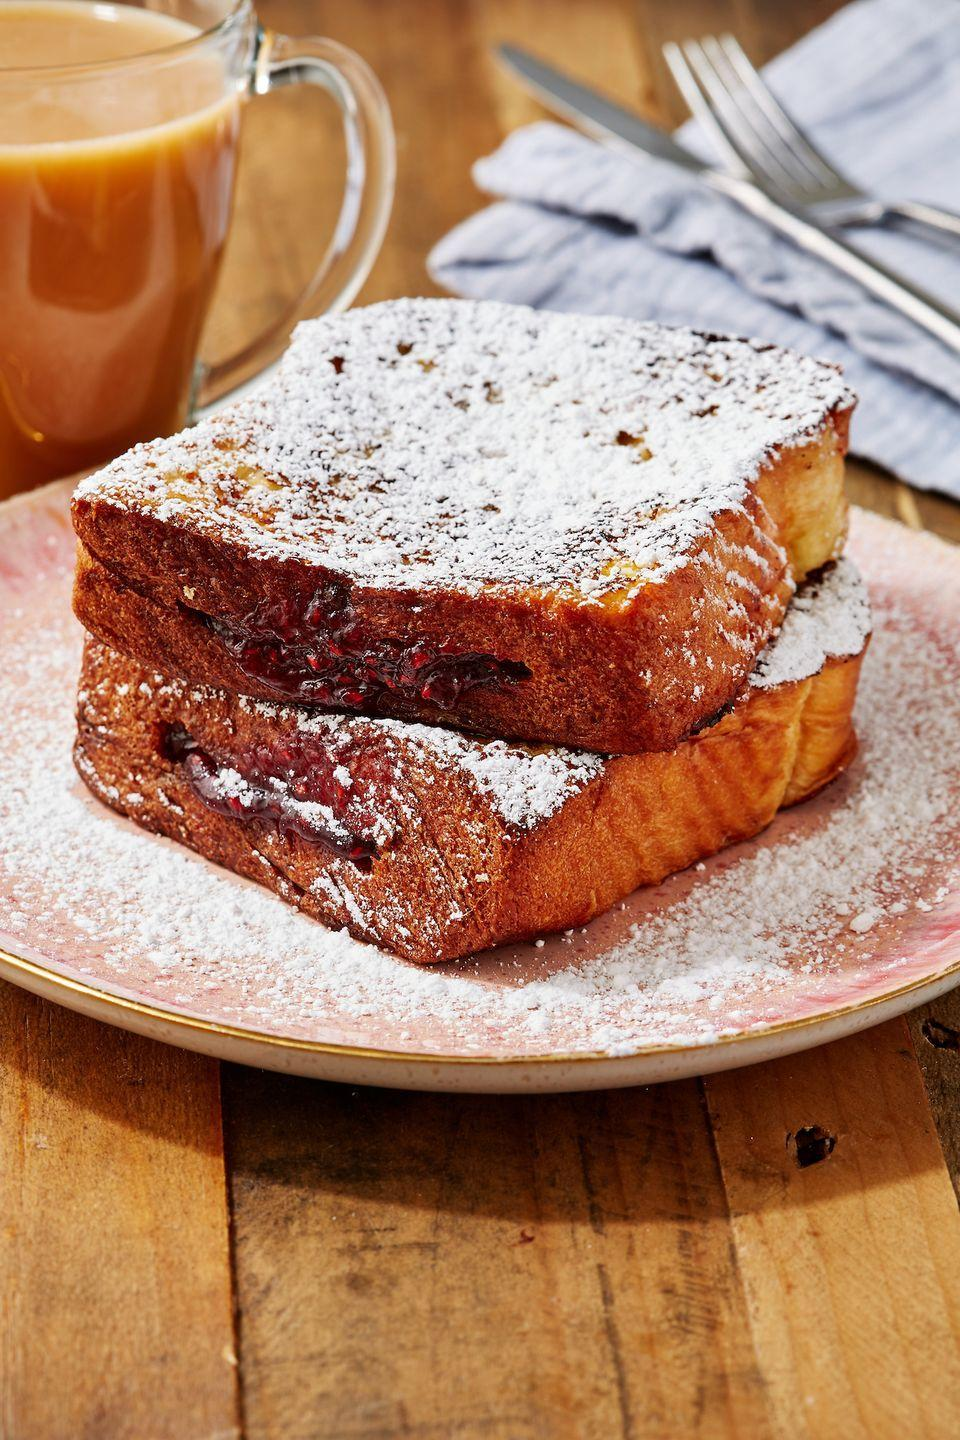 """<p>This is an immediately iconic mash-up.</p><p>Get the recipe from <a href=""""https://www.delish.com/cooking/recipe-ideas/a31134887/jelly-donut-french-toast-recipe/"""" rel=""""nofollow noopener"""" target=""""_blank"""" data-ylk=""""slk:Delish."""" class=""""link rapid-noclick-resp"""">Delish. </a></p>"""